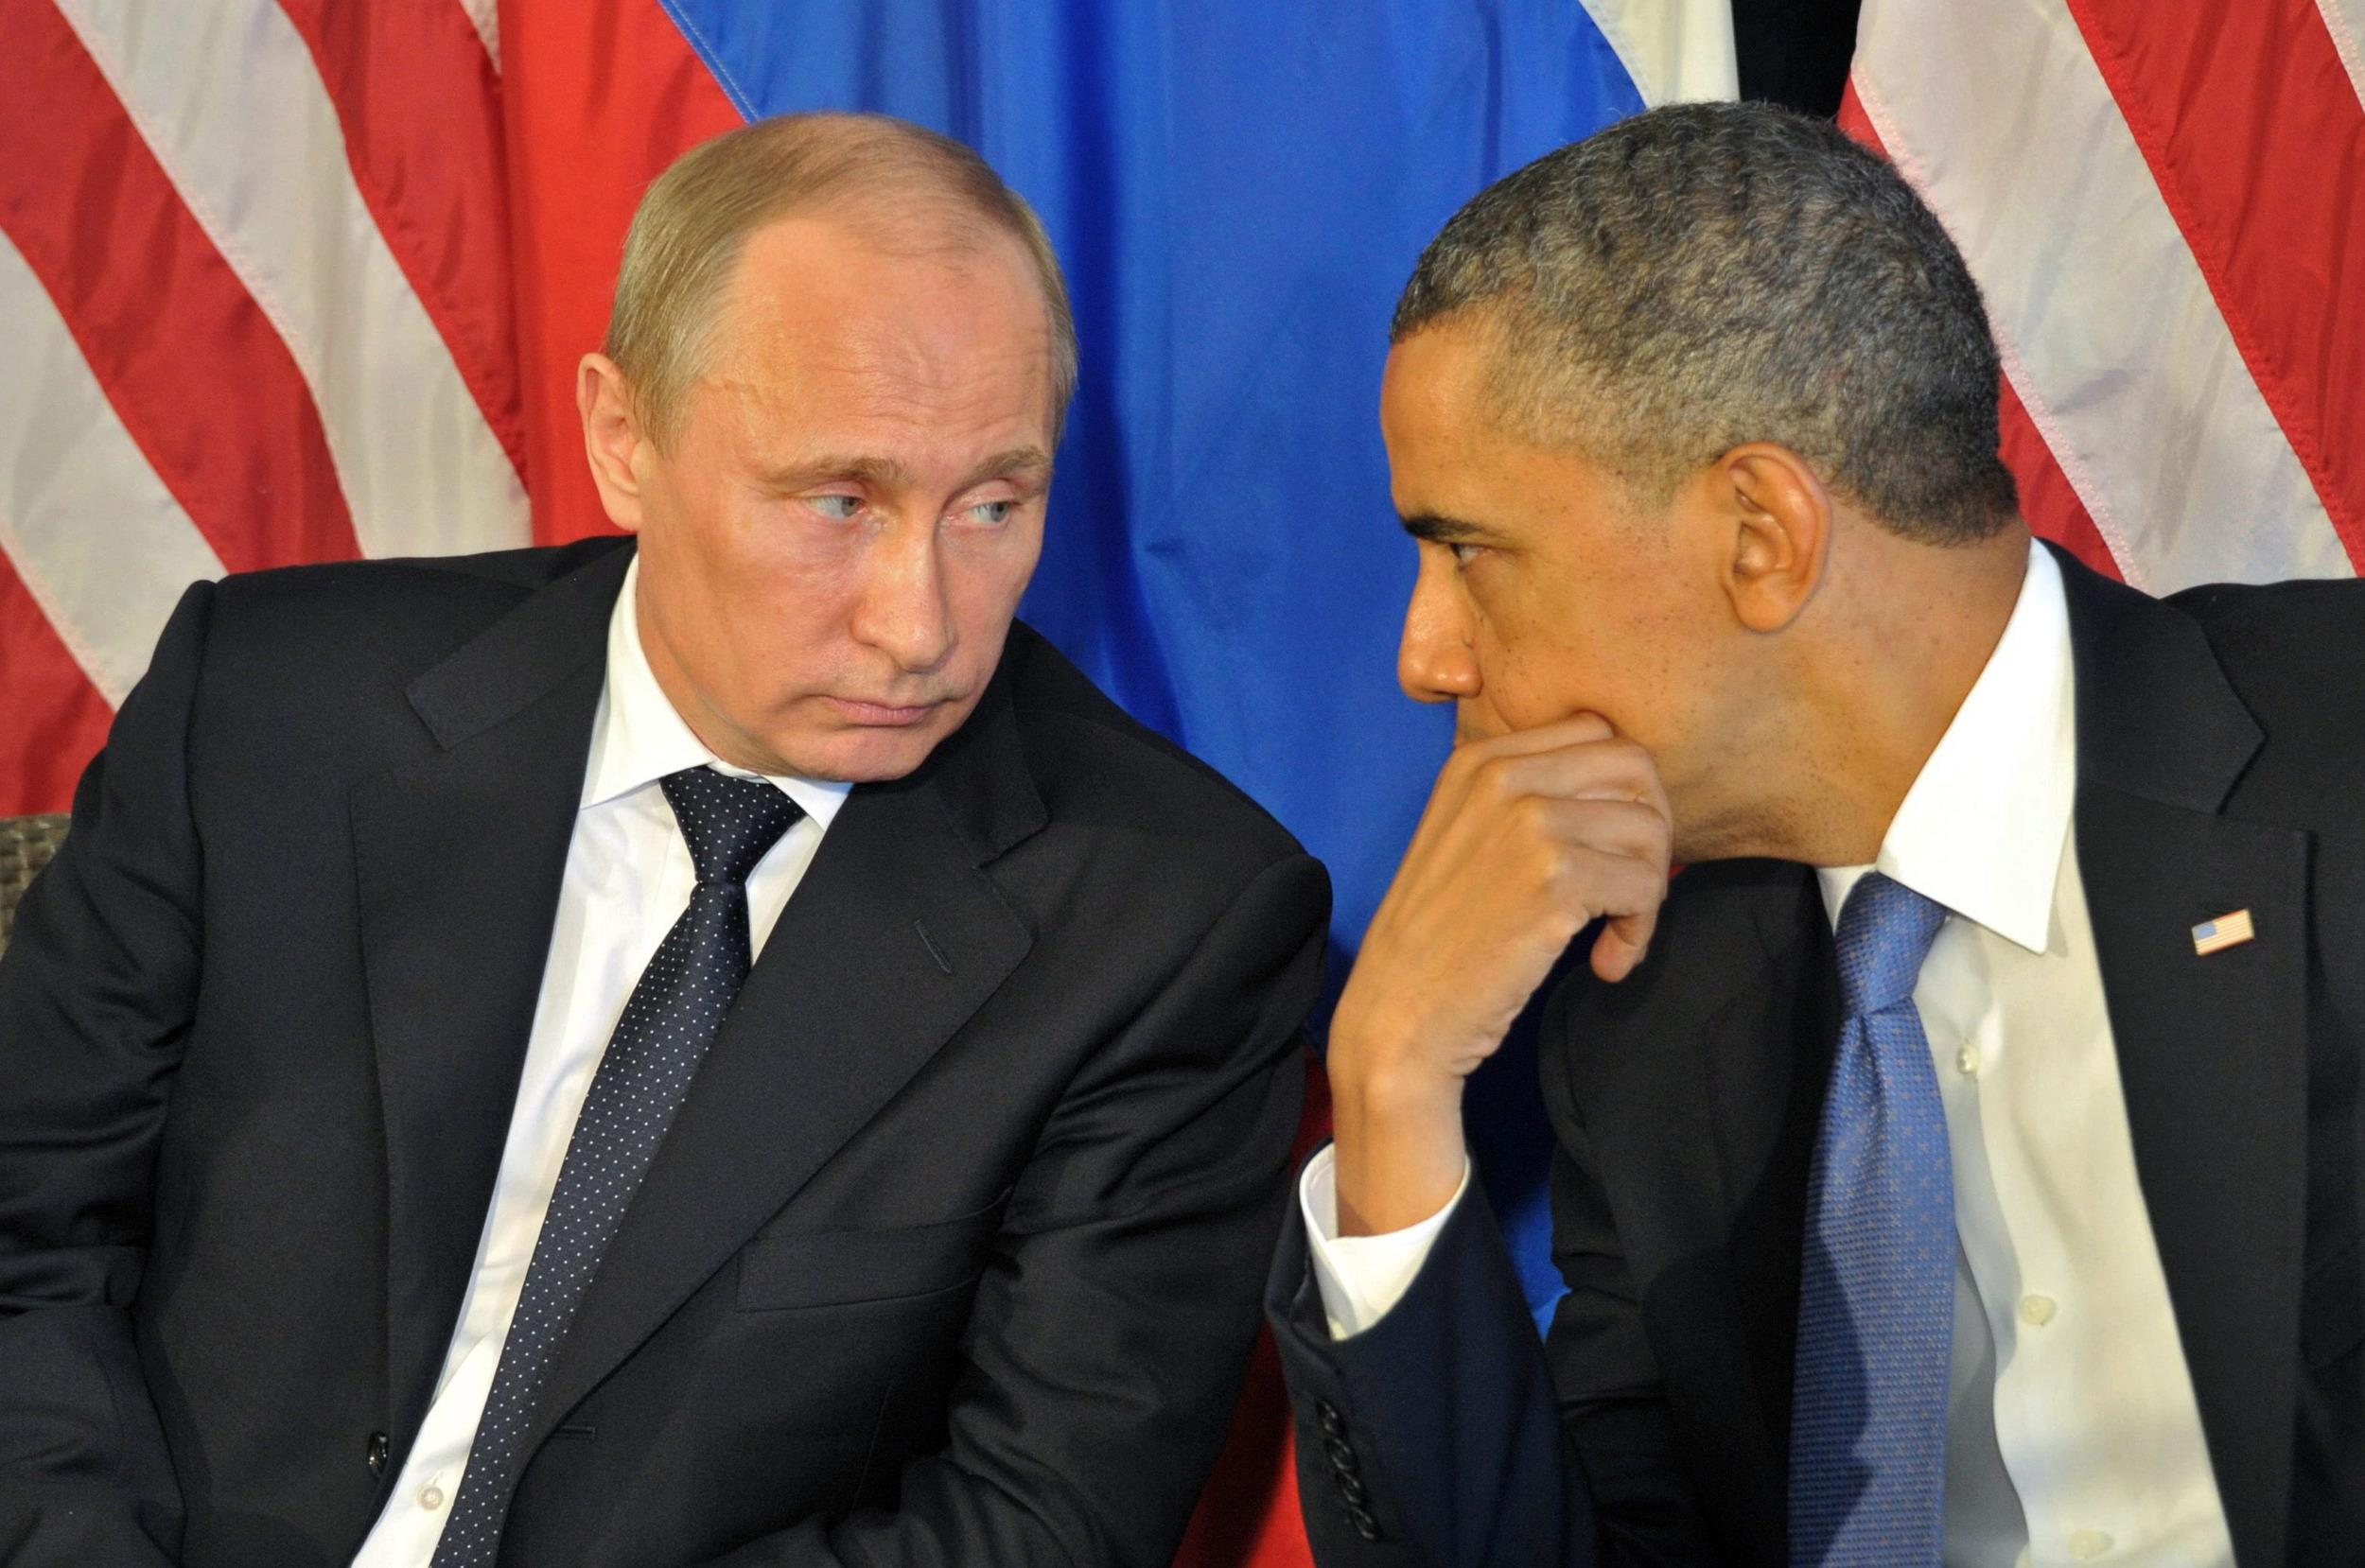 Image: Barack Obama talks to Vladimir Putin on June 18, 2012